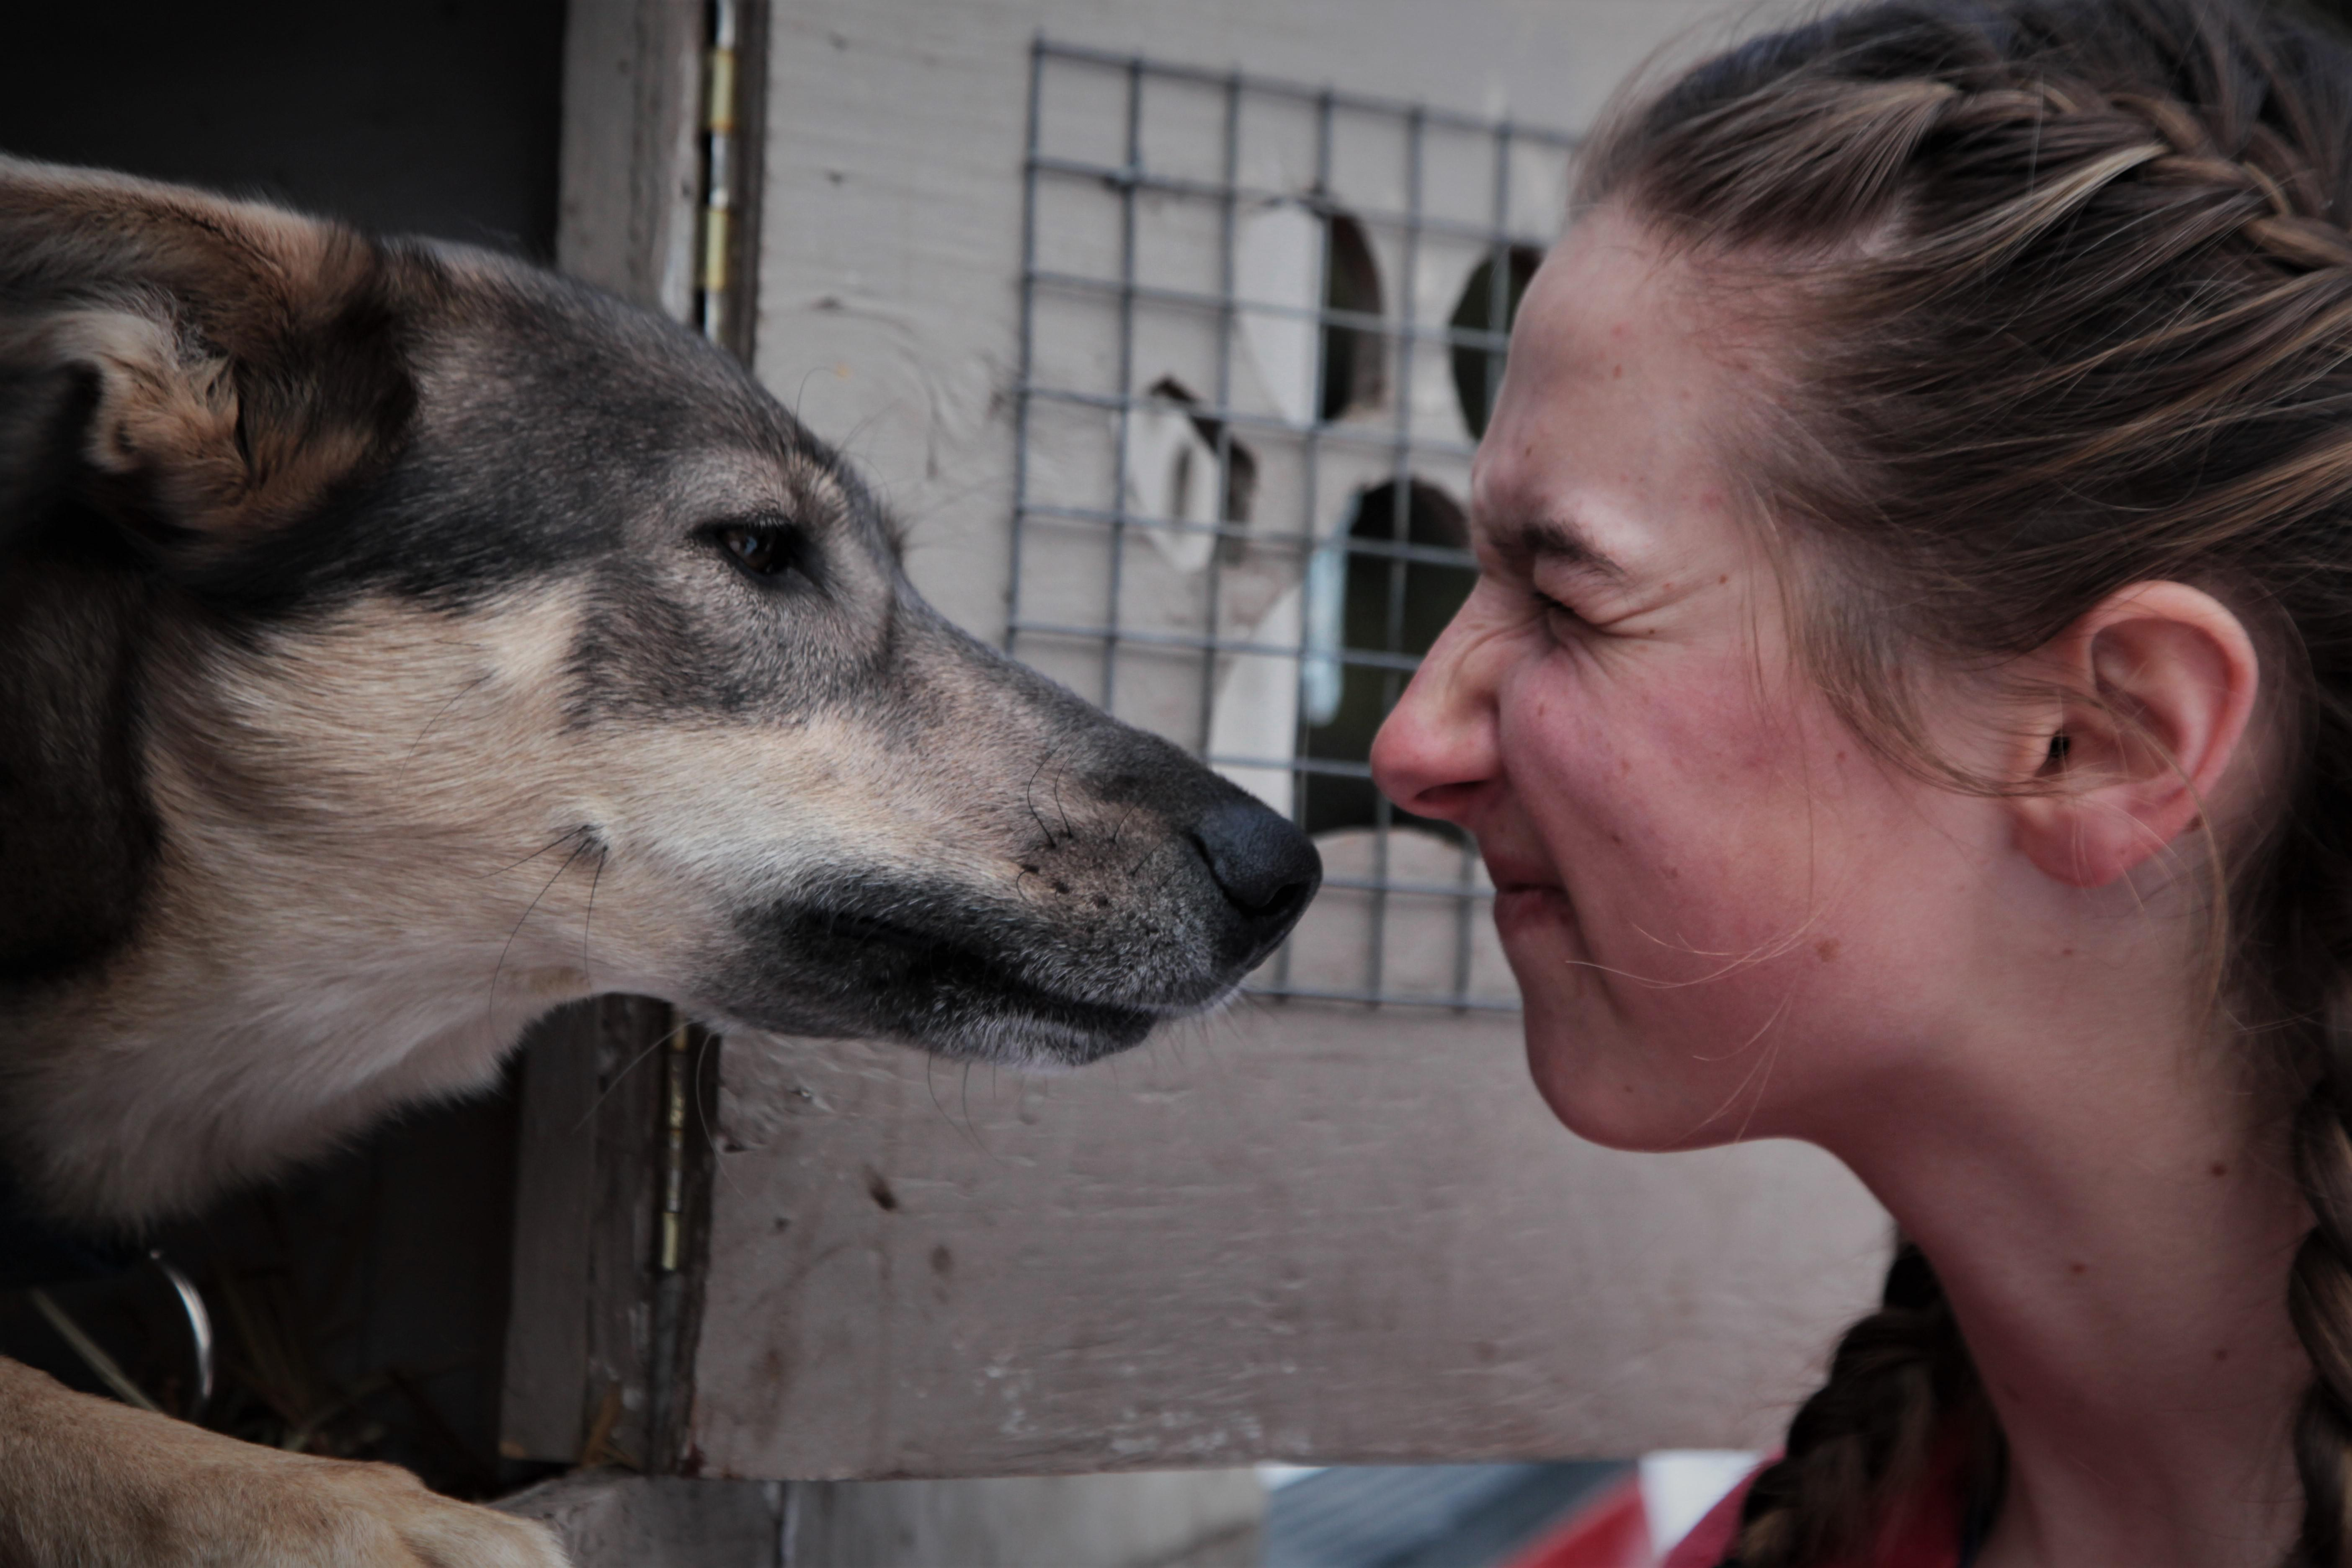 Morgan Anderson and her sled dogs share a special bond